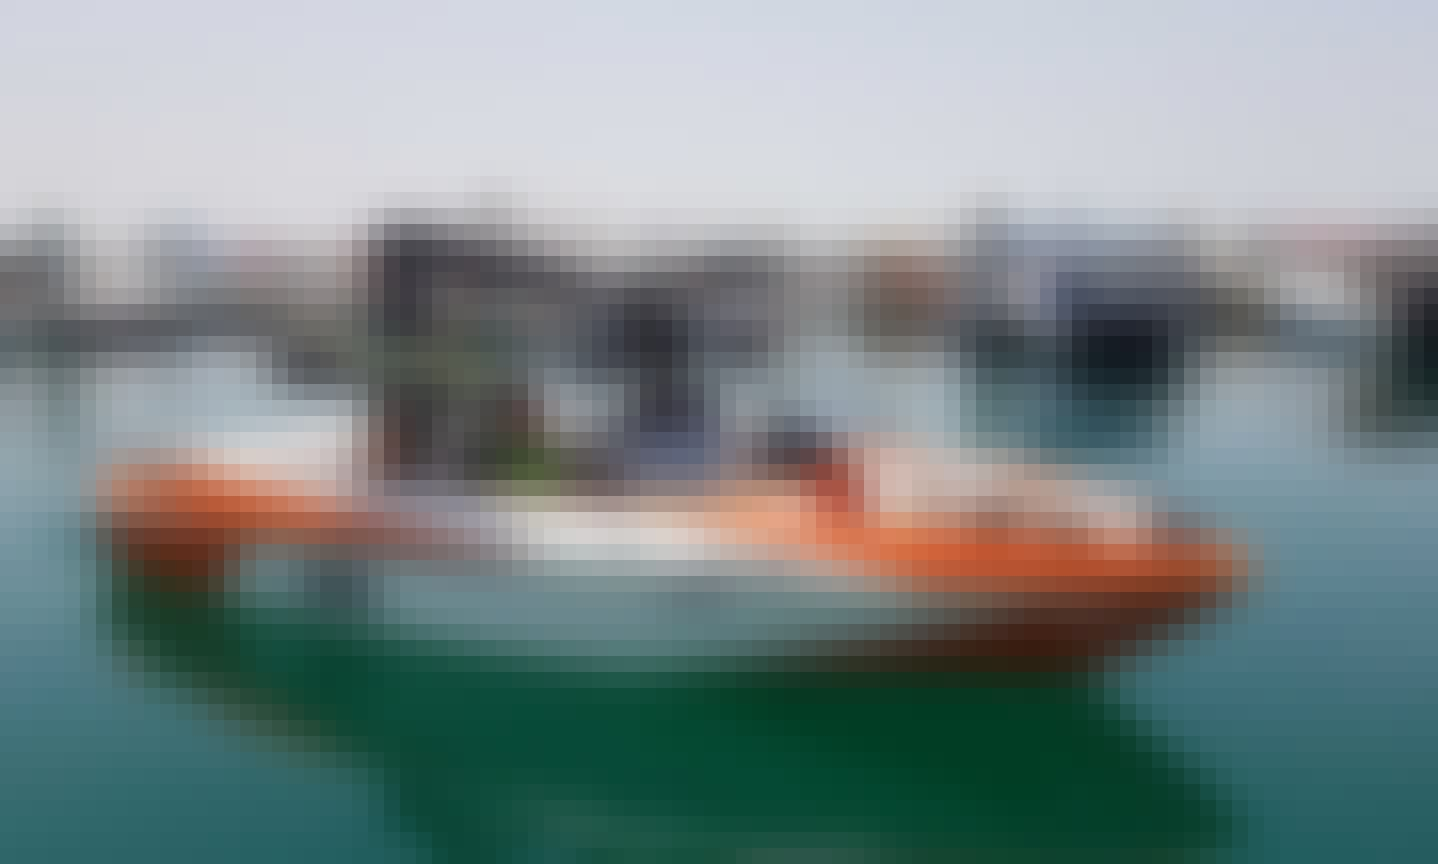 Tour the Amwaj Islands with Axis A20 Powerboat for 5 Person in Muharraq Governorate, Bahrain